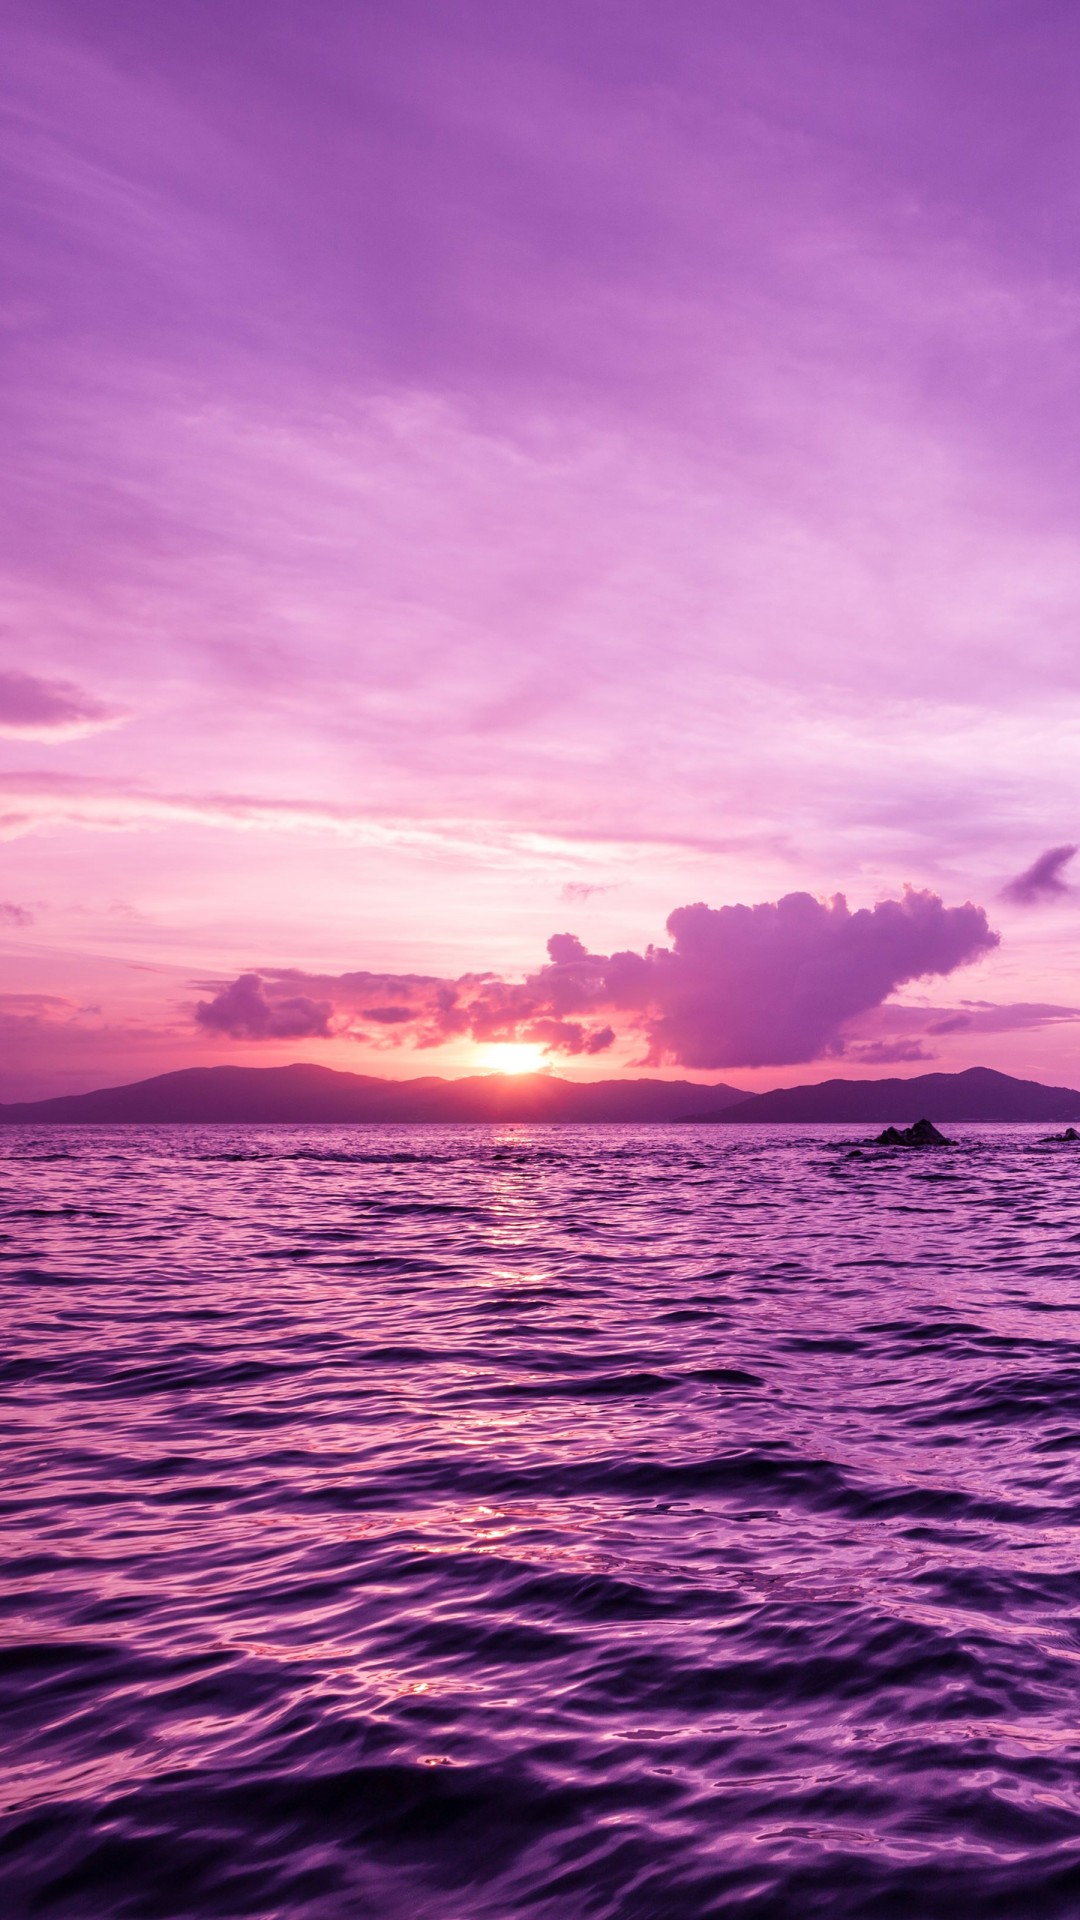 Pelican Island Sunset, British Virgin Islands Wallpaper for SAMSUNG Galaxy S4